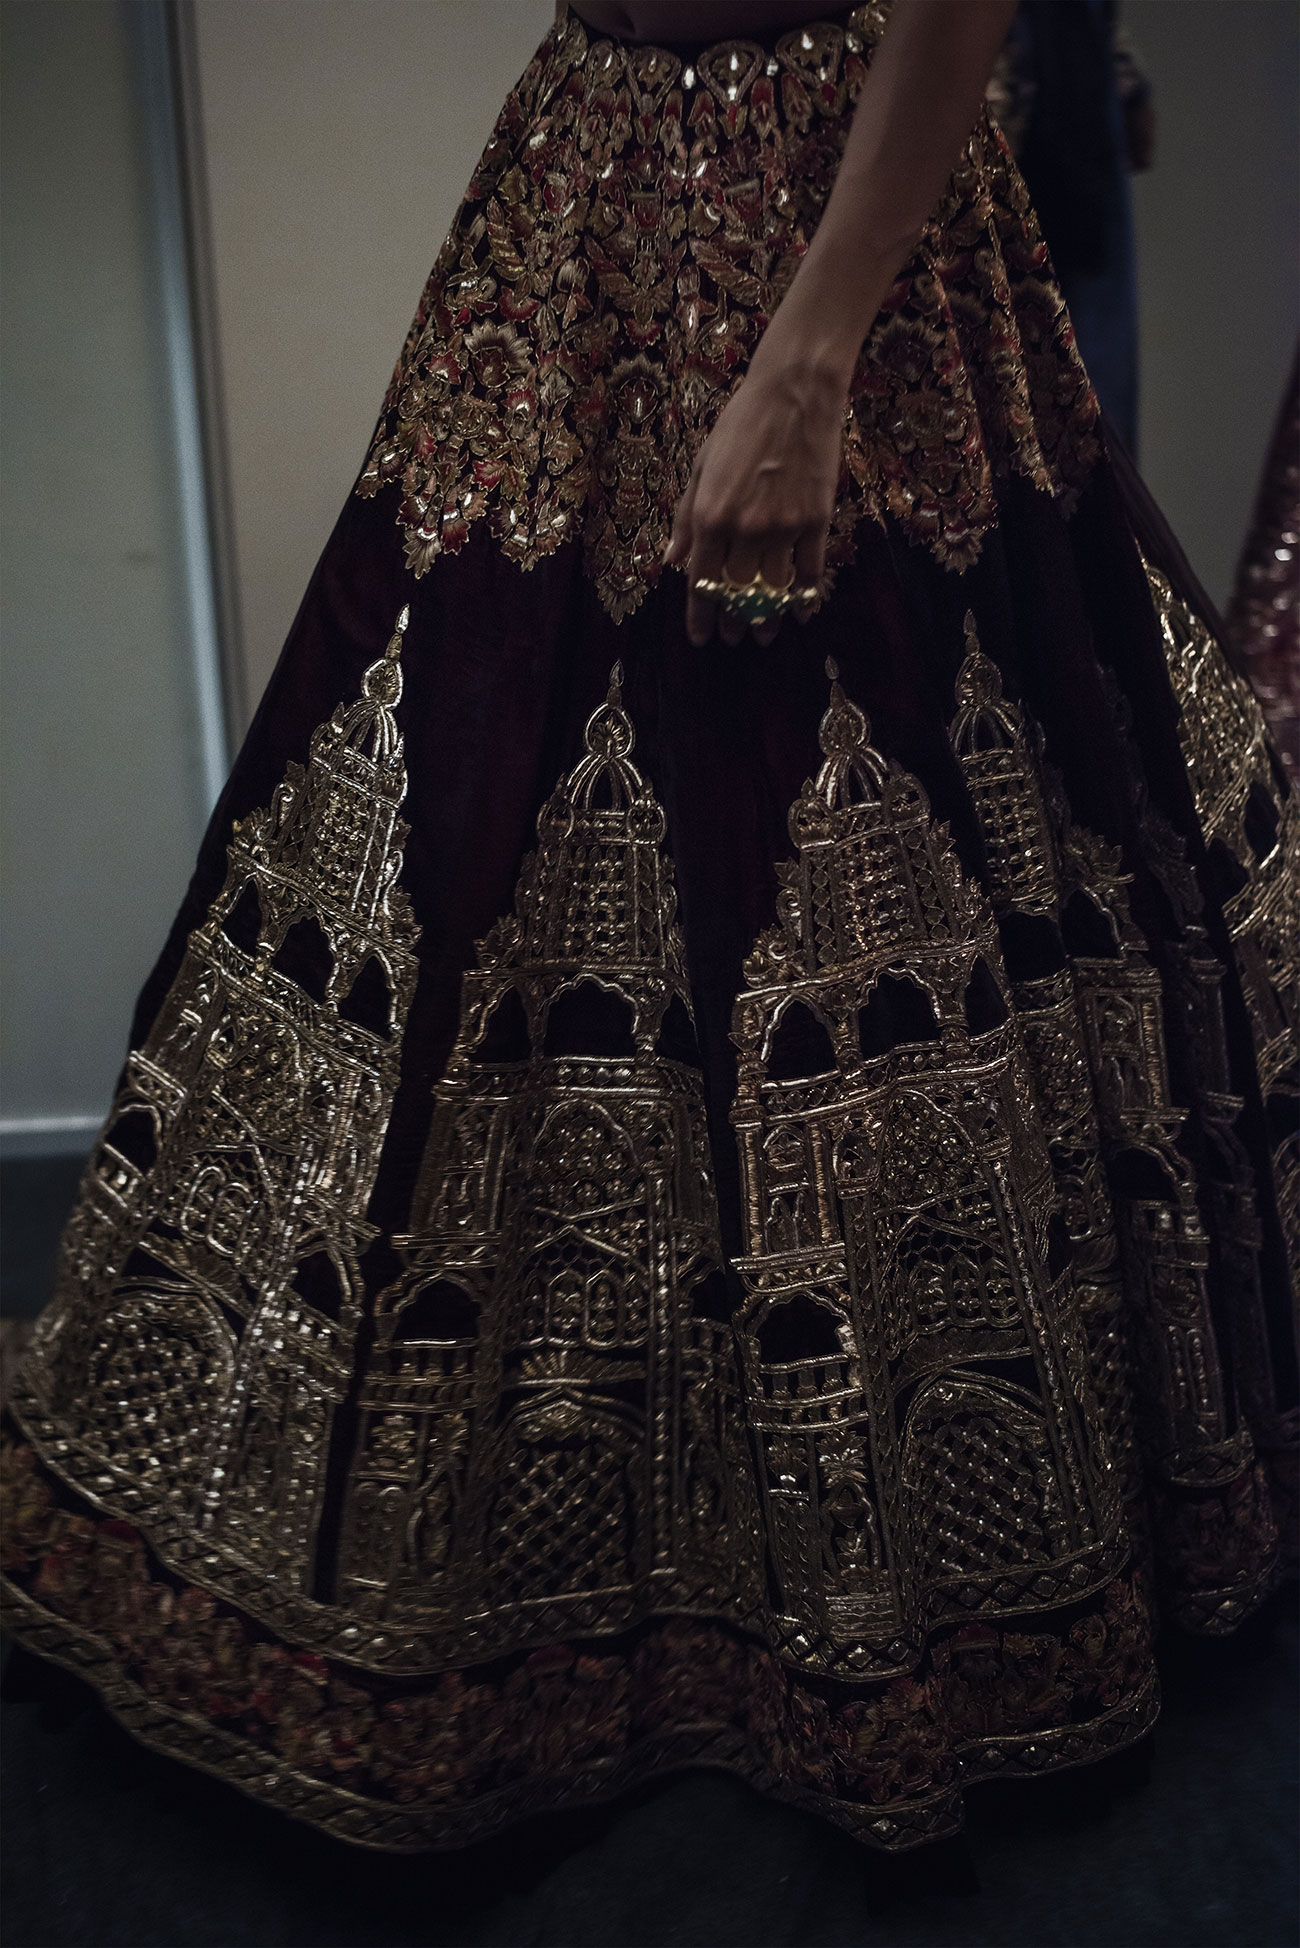 Backstage FDCI India Couture Week 2016 Photo by RAWKY KSH 30